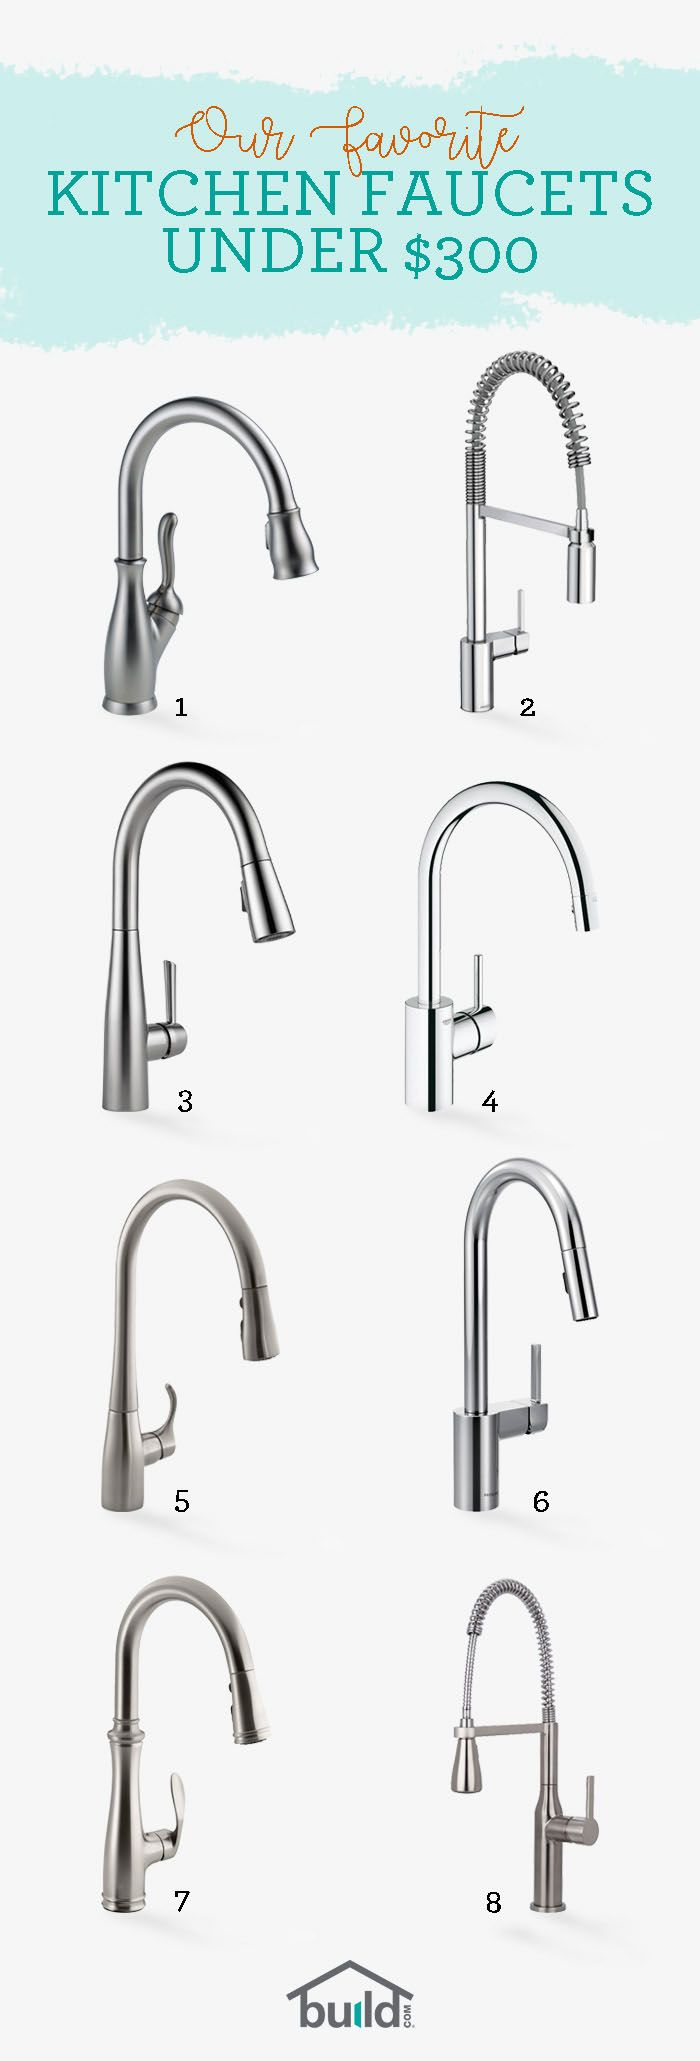 faucets images kitchen miseno full com bronze of ideas with designs hd faucet size venetian oepsym